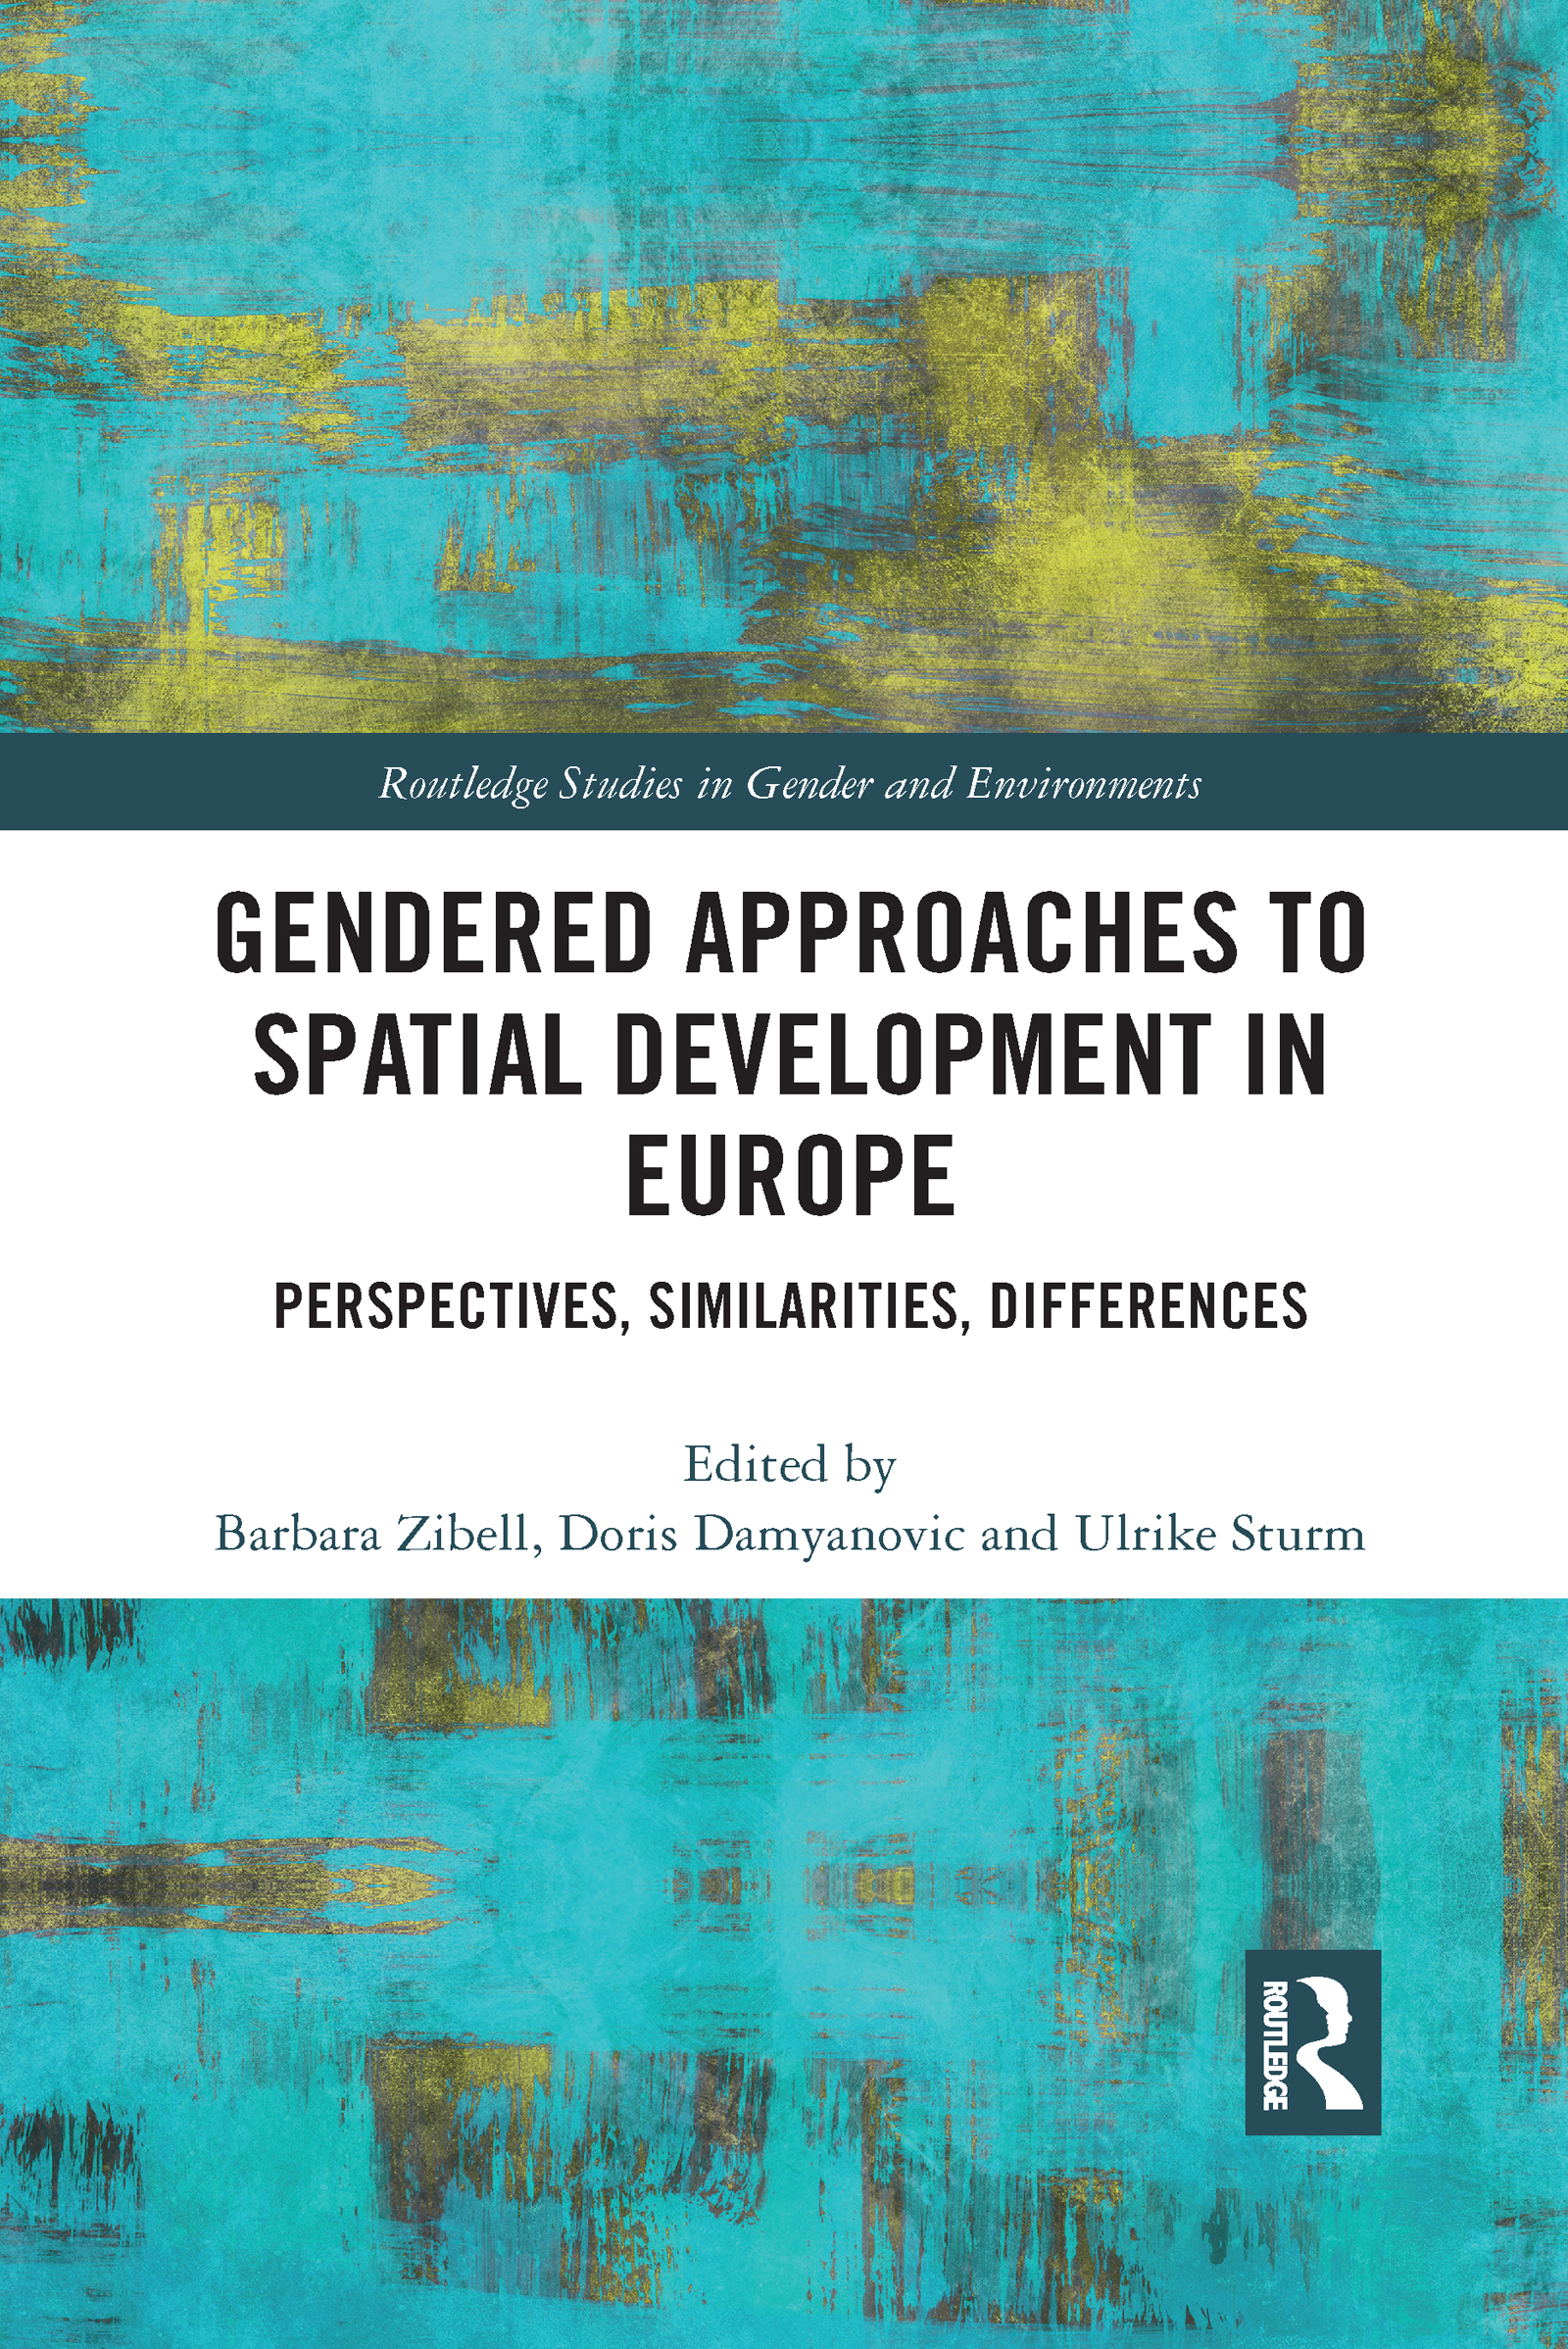 Gendered Approaches to Spatial Development in Europe